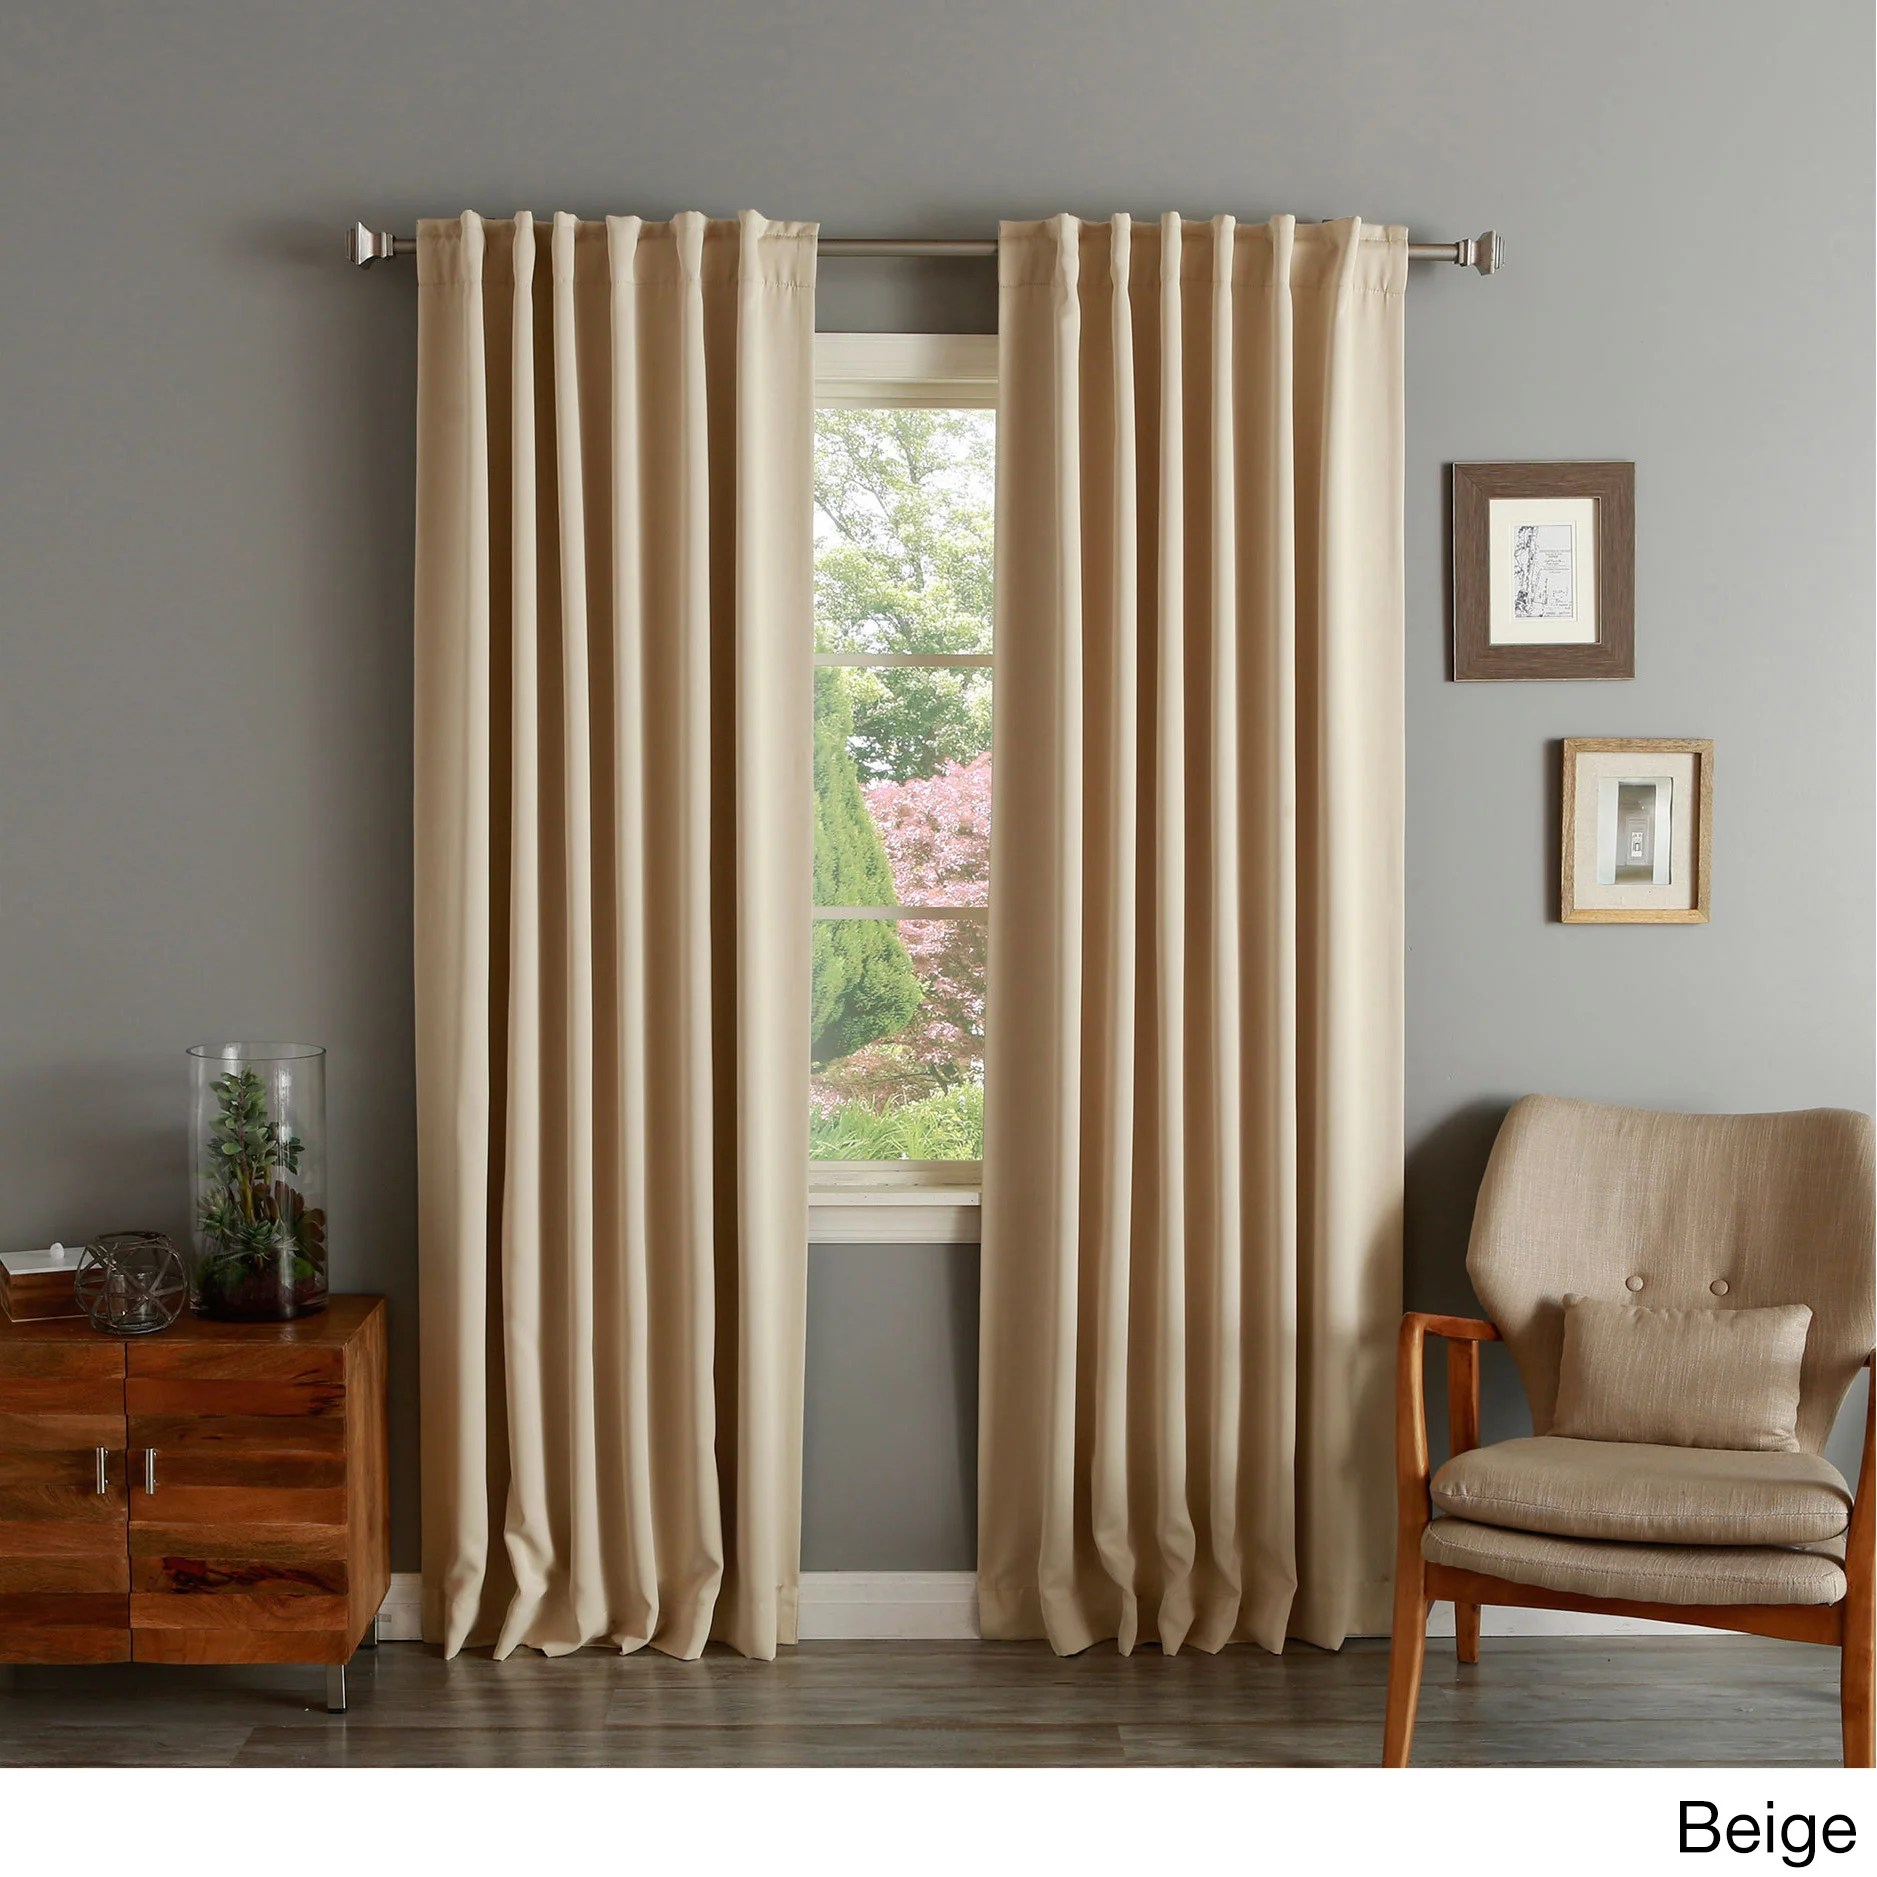 94 Inch Blackout Curtains Aurora Home Insulated Thermal Blackout 84 Inch Curtain Panel Pair 52 X 84